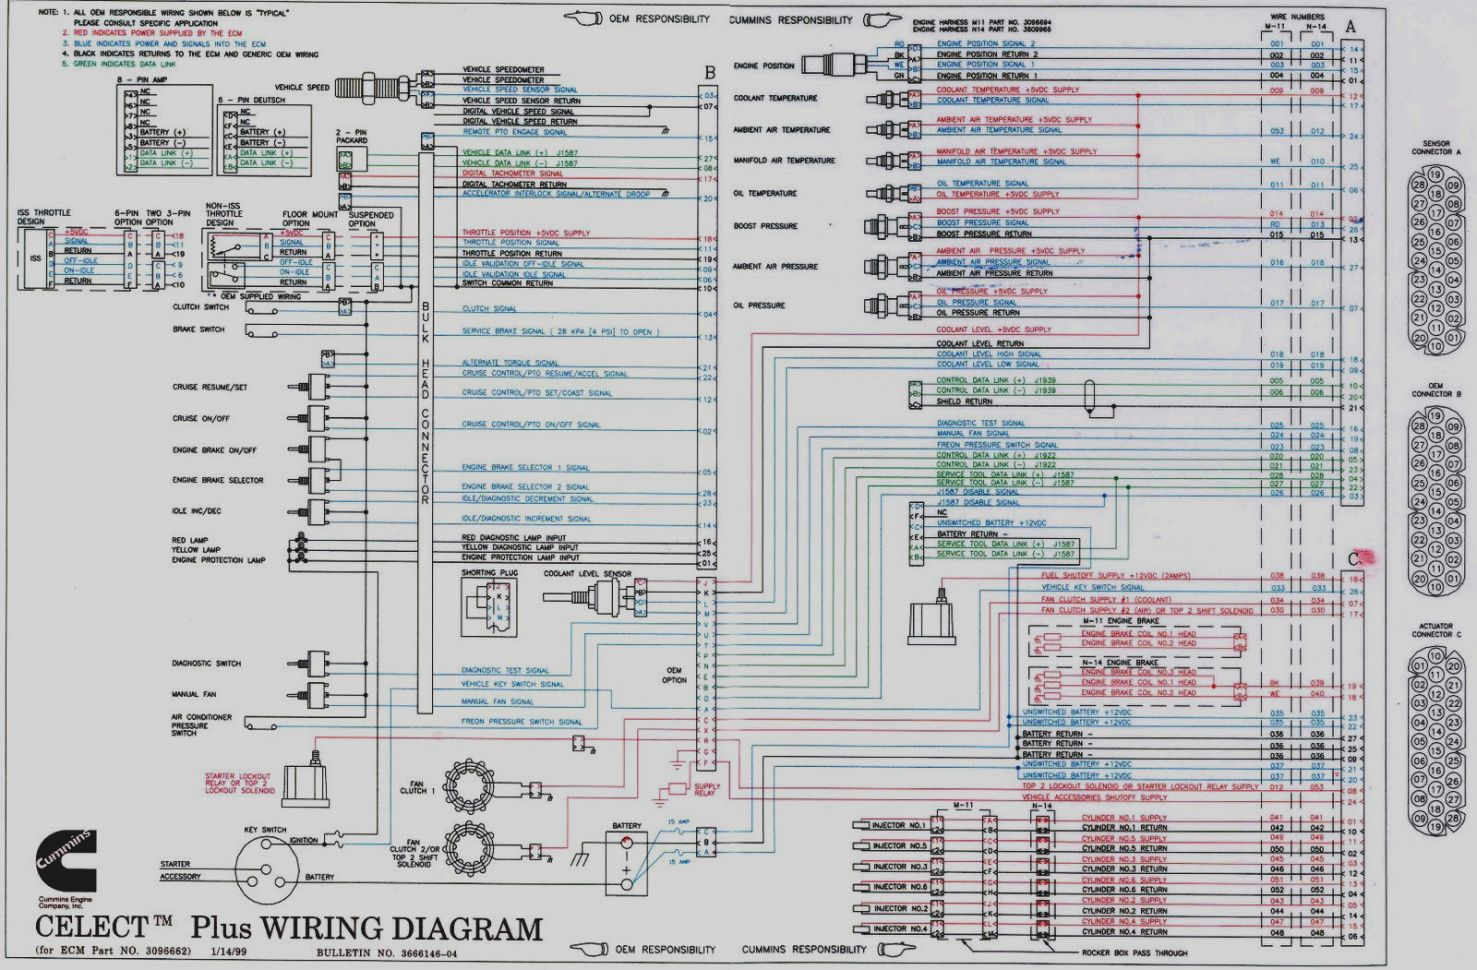 hight resolution of awesome cummins n14 celect plus wiring diagram freightliner columbiaawesome cummins n14 celect plus wiring diagram freightliner